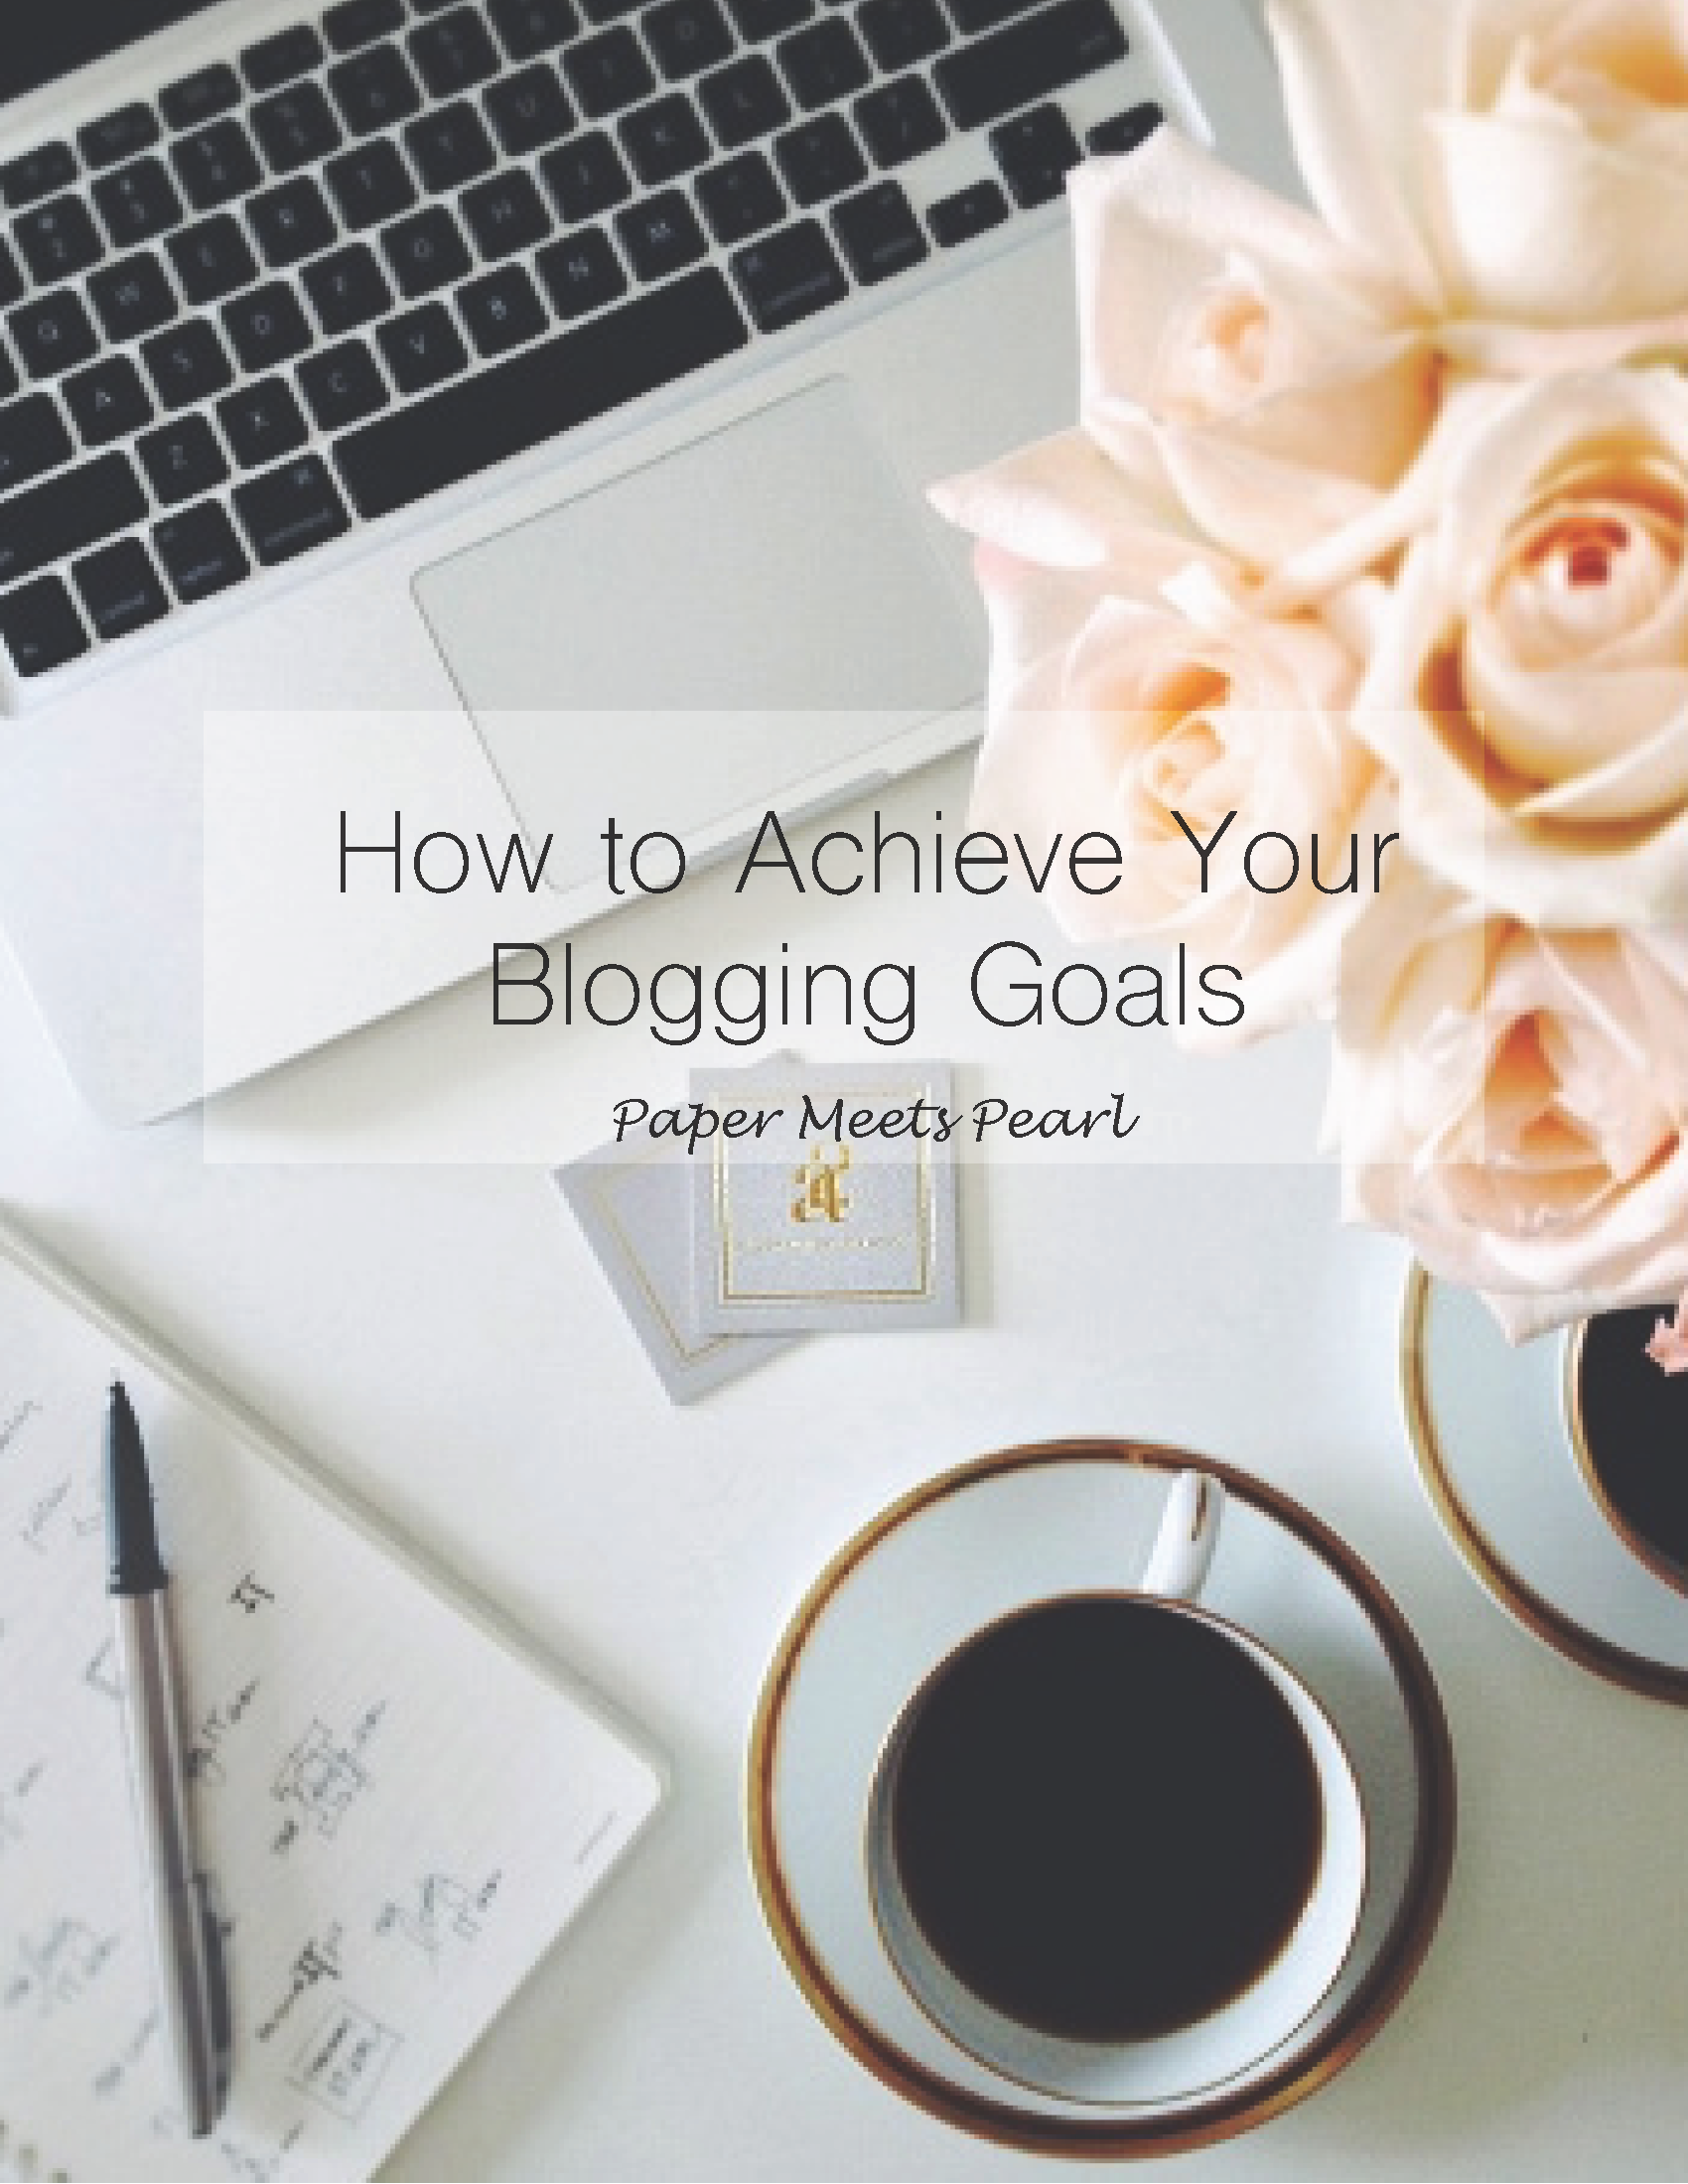 How to Achieve Your Blogging Goals